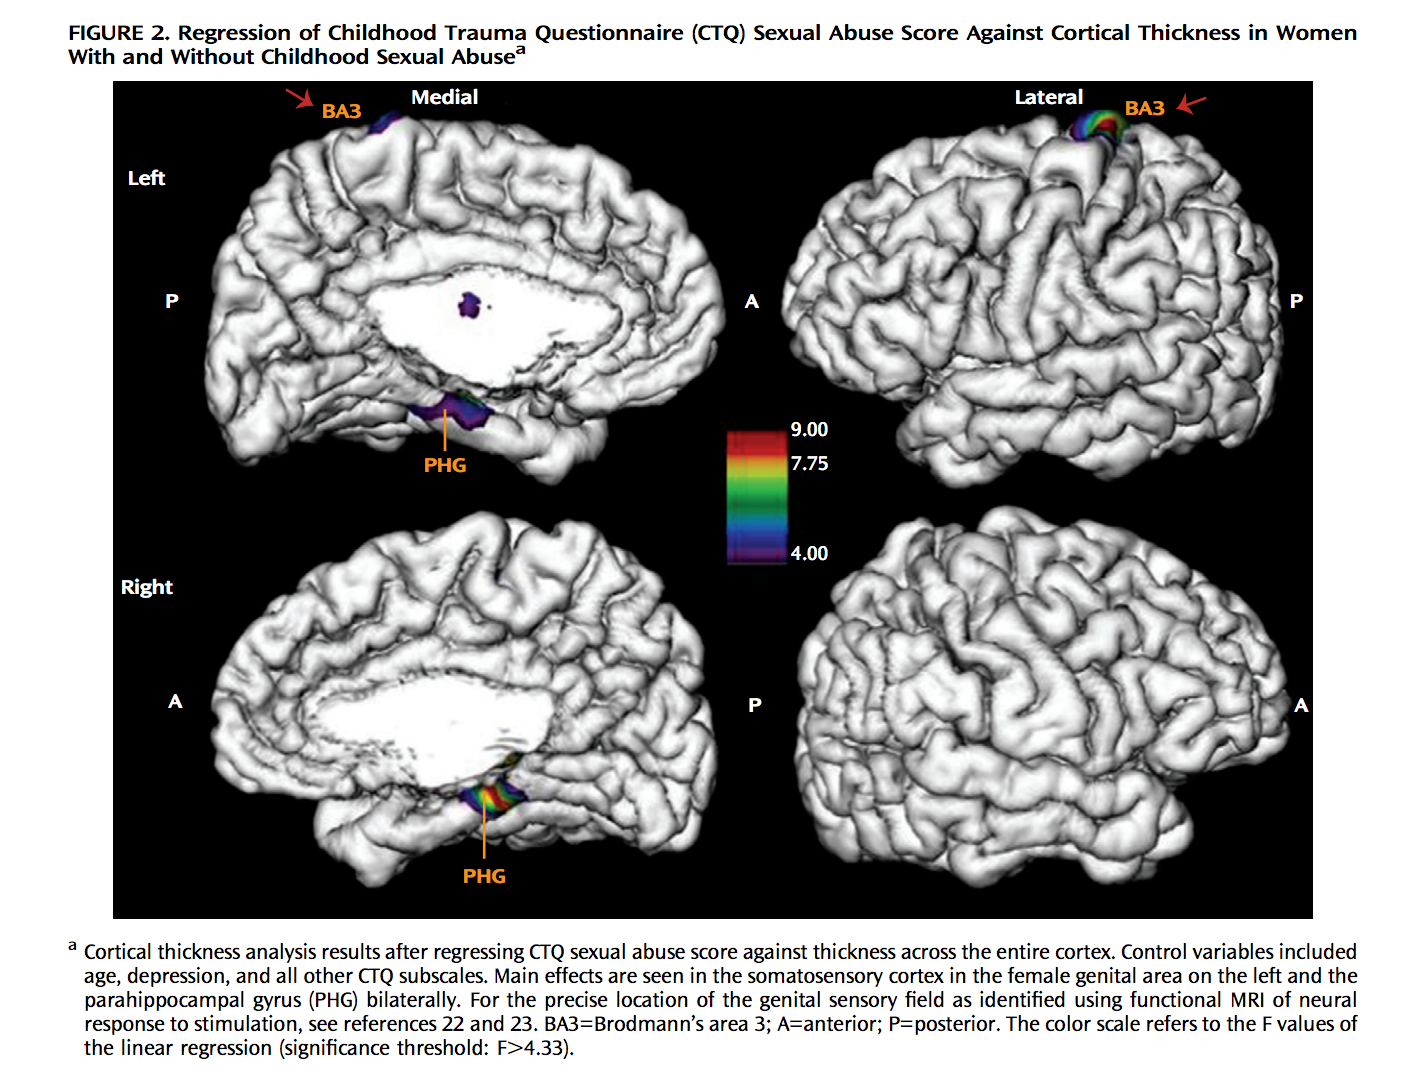 the effects on child sexual abuse and neglect on the developing brain. Abused and neglected children have poorly integrated cerebral hemispheres this poor integration of hemispheres and underdevelopment of the orbitofrontal cortex is the when development in this area of the brain is hindered because of the toxic effects of stress hormones on the developing brain.